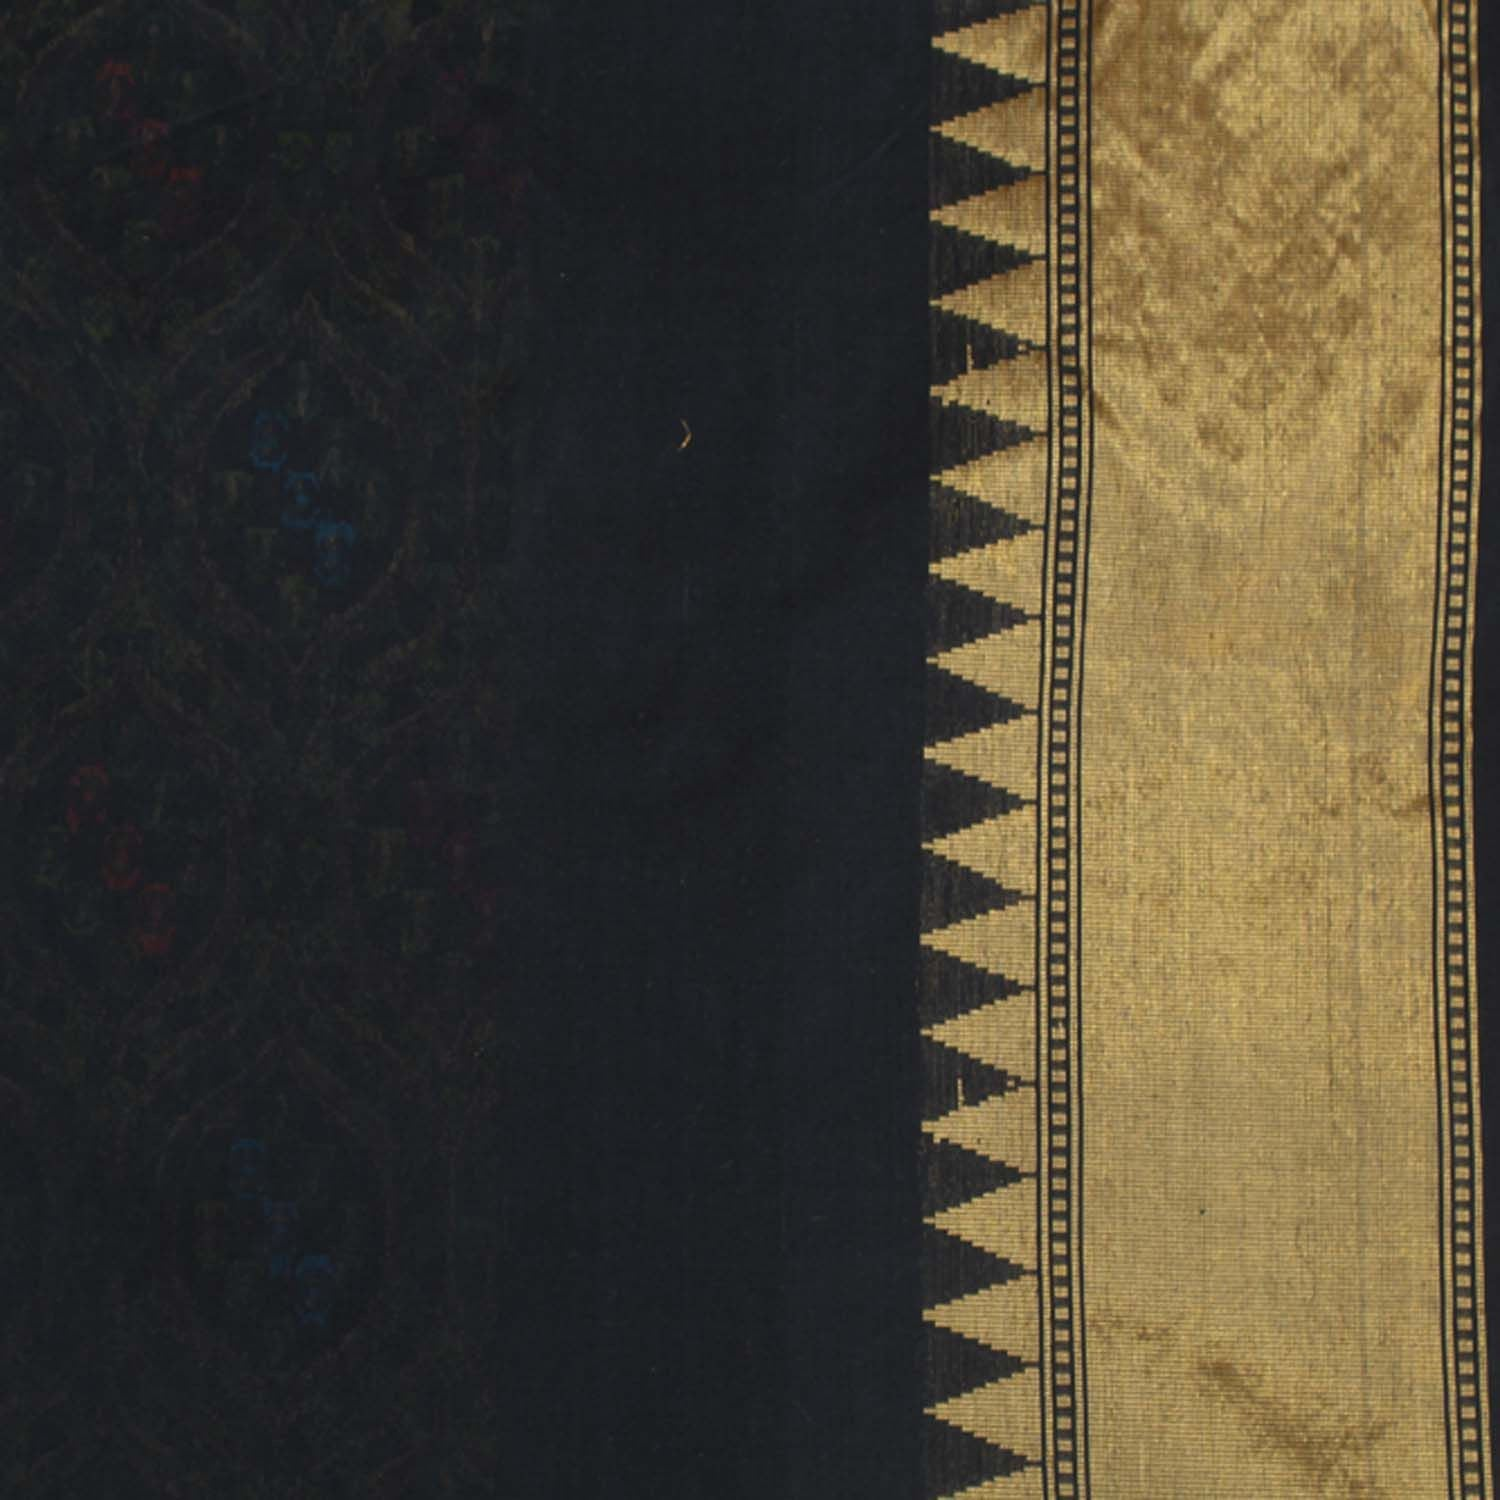 Black Pure Silk Georgette Banarasi Handloom Saree - Tilfi - 4